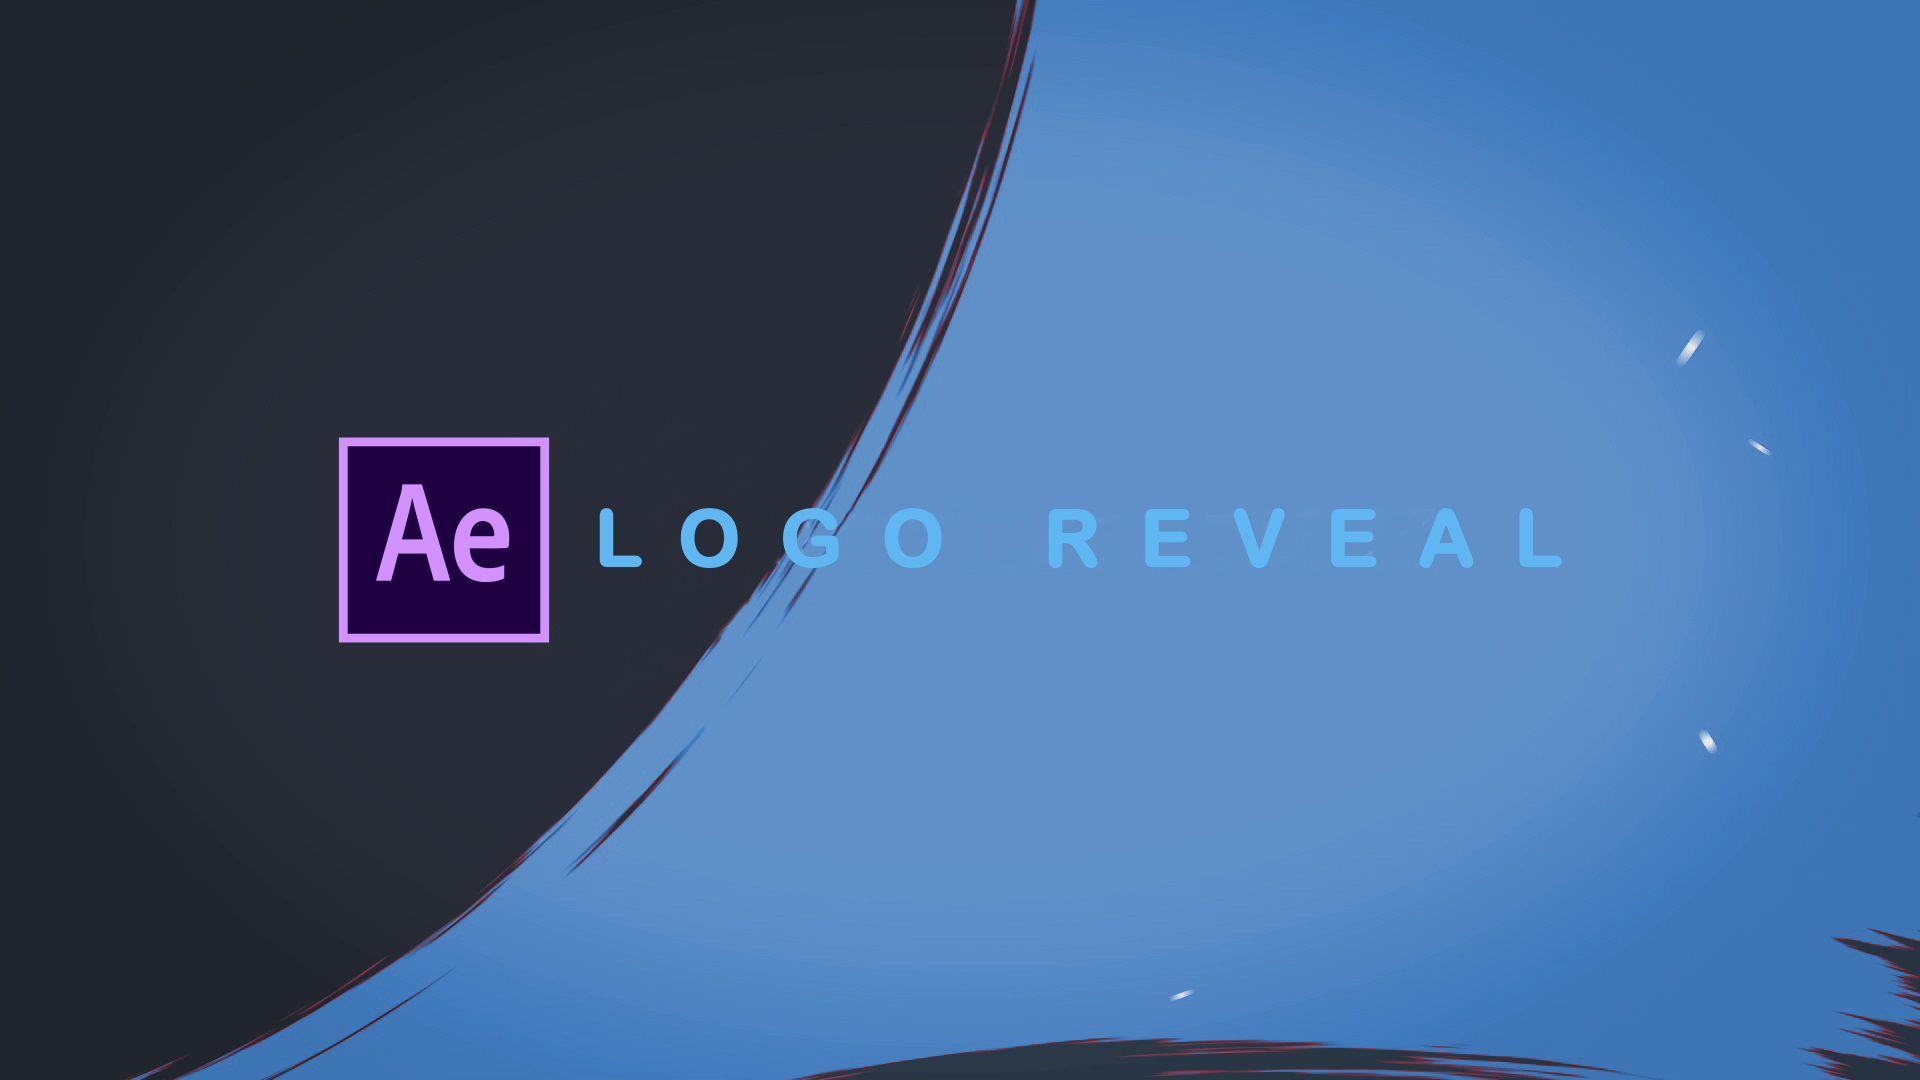 005 Fantastic Free After Effect Template Particle Logo Reveal Download Design  -Full